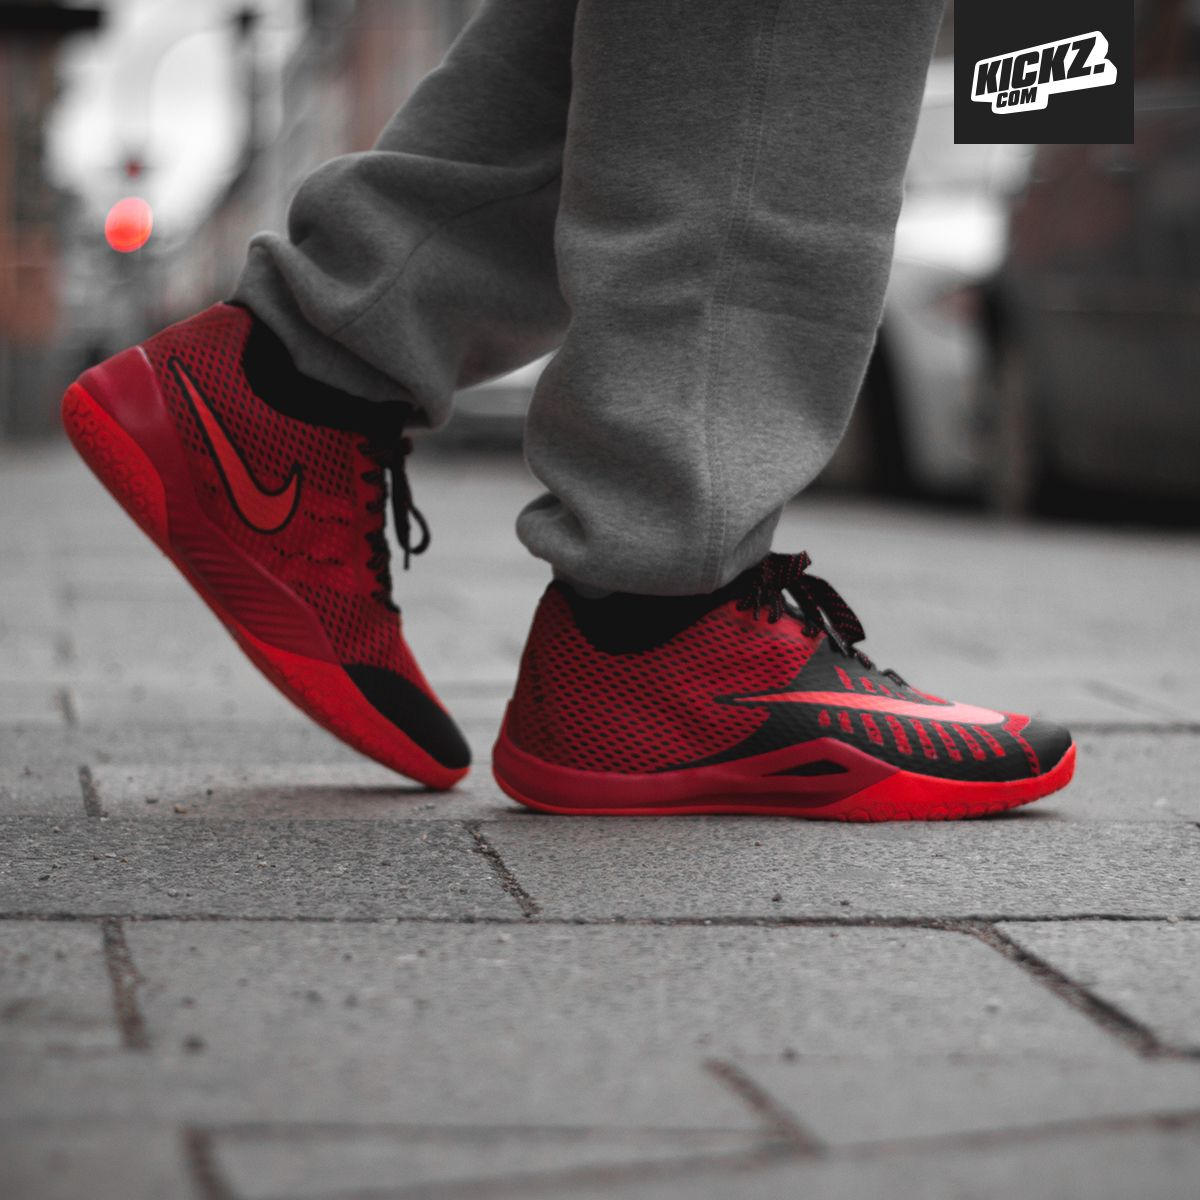 Adidas crazylight boost low 2016 bred black red mens basketball shoes - Nike Basketball Heat On Feet The New Nike Hyperlive Mens Low Cut Basketball Shoe